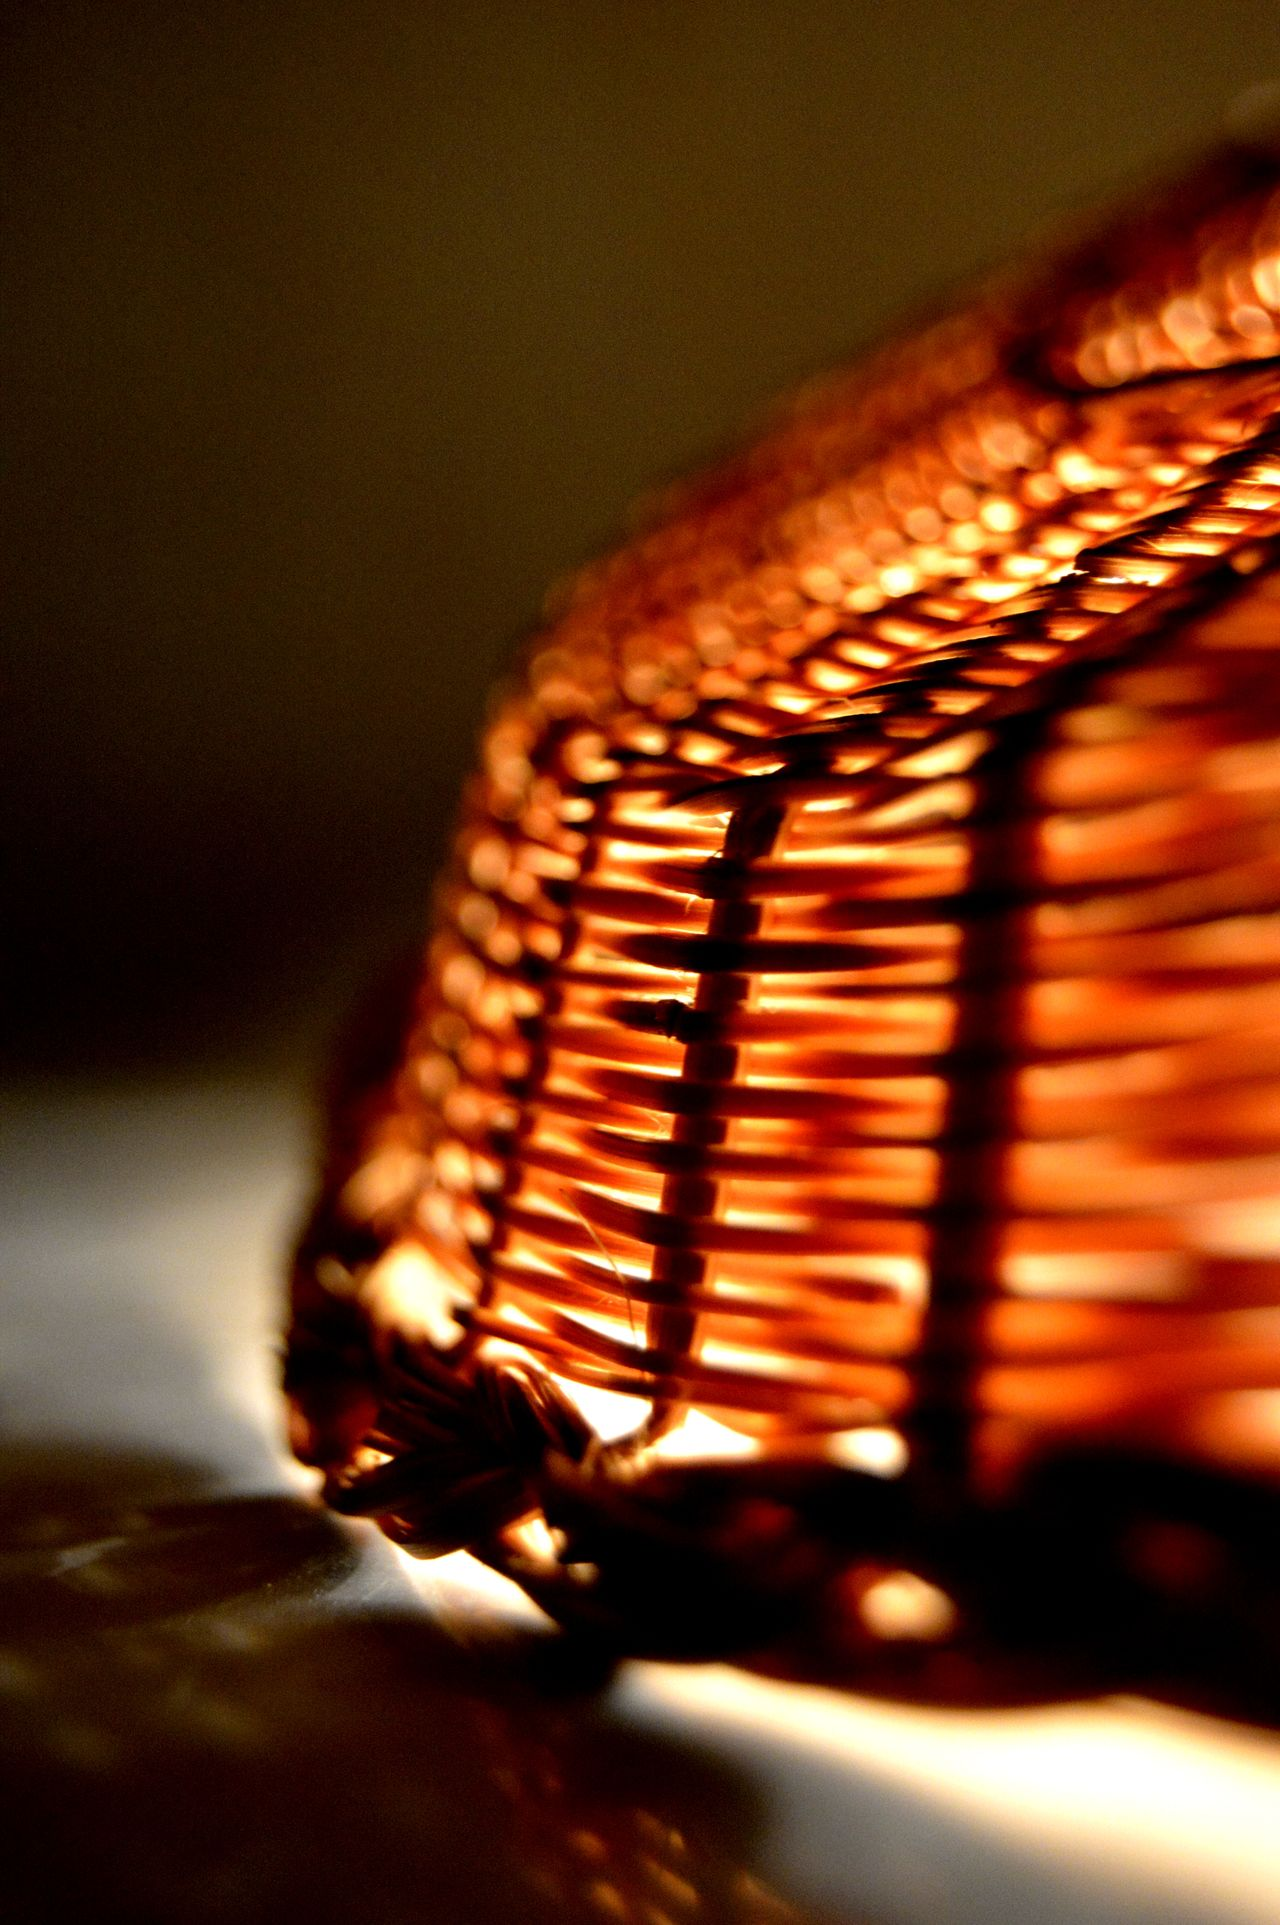 Bamboo weaving Bamboo Close-up Glow Of Light Illuminated Indoors  Light Source No People Serving Tray